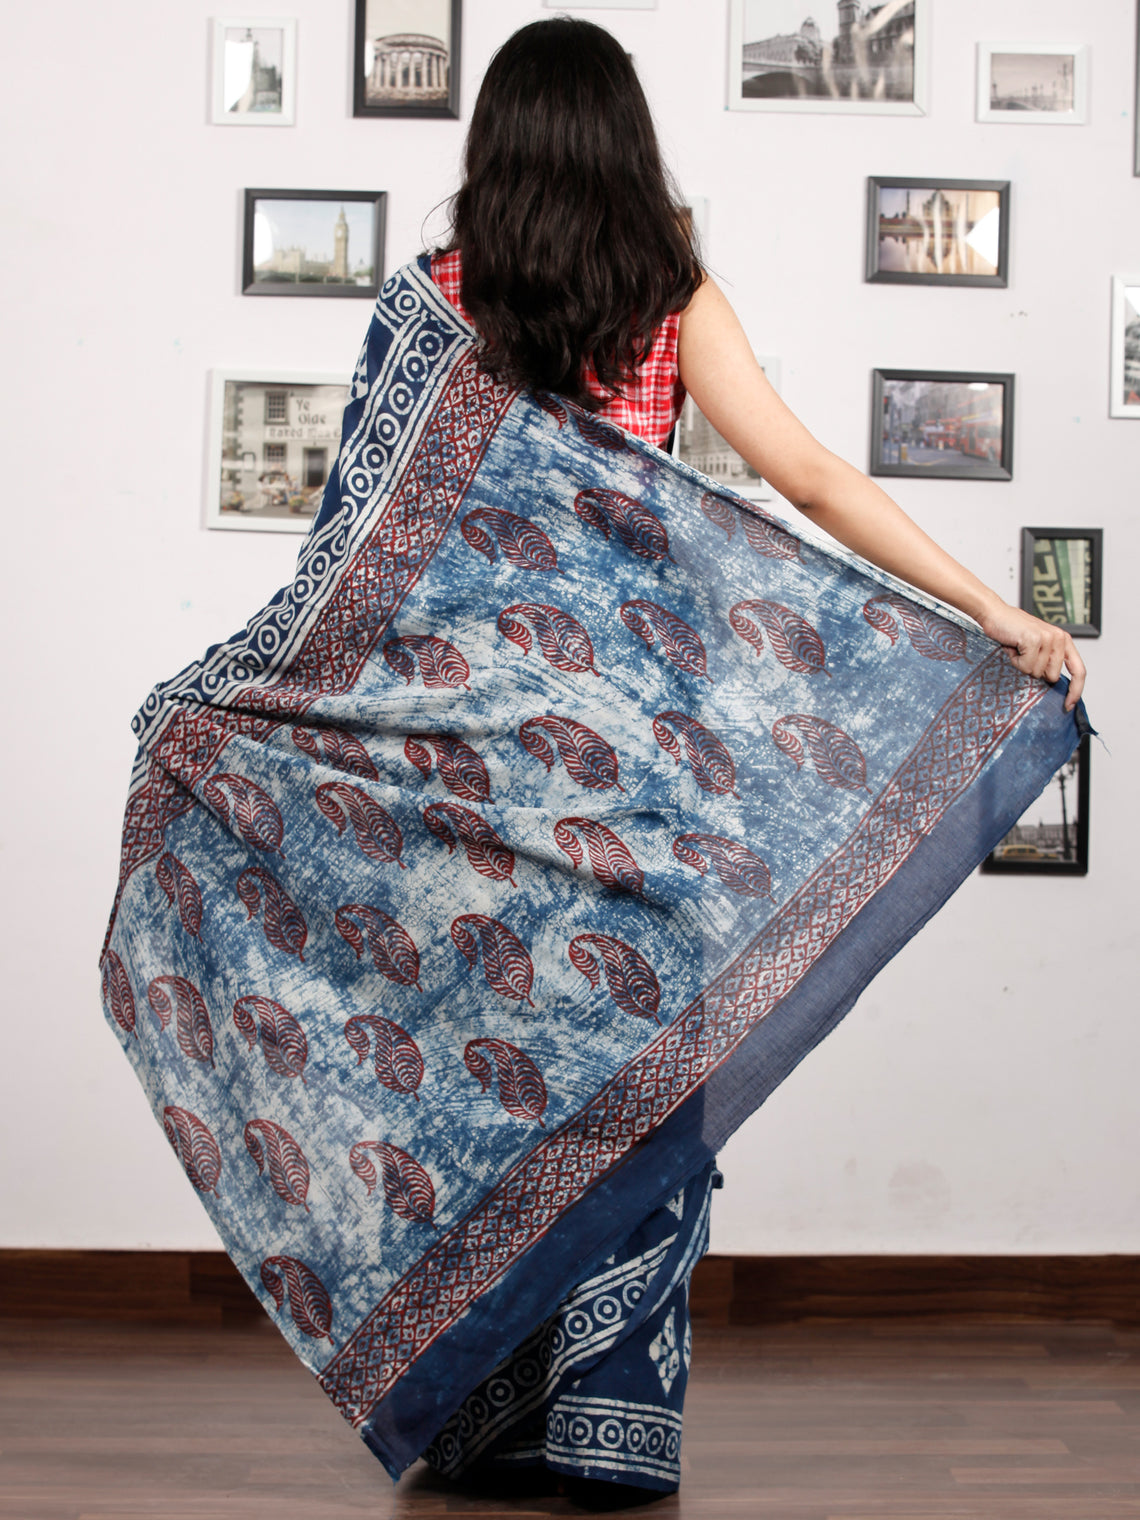 Indigo White Maroon Hand Block Printed Cotton Mul Saree in Natural Colors - S031703178